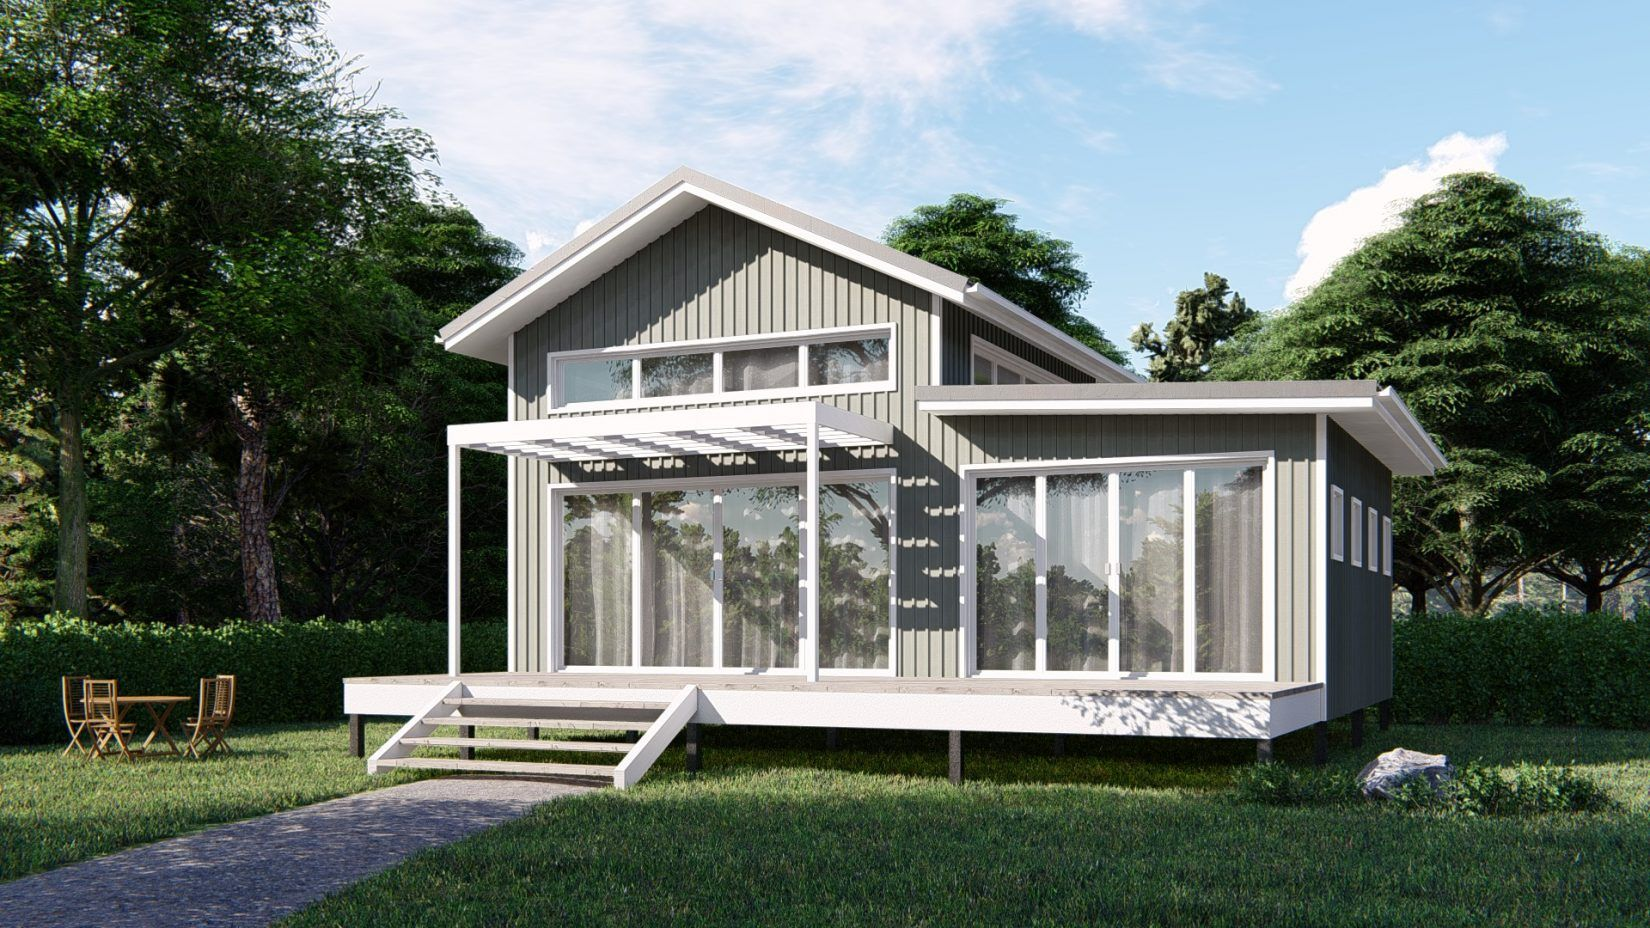 Billabong Kit Home 52m2 From 34 892 Imagine Kit Homes Kit Homes Tiny House Exterior Tiny House Kits